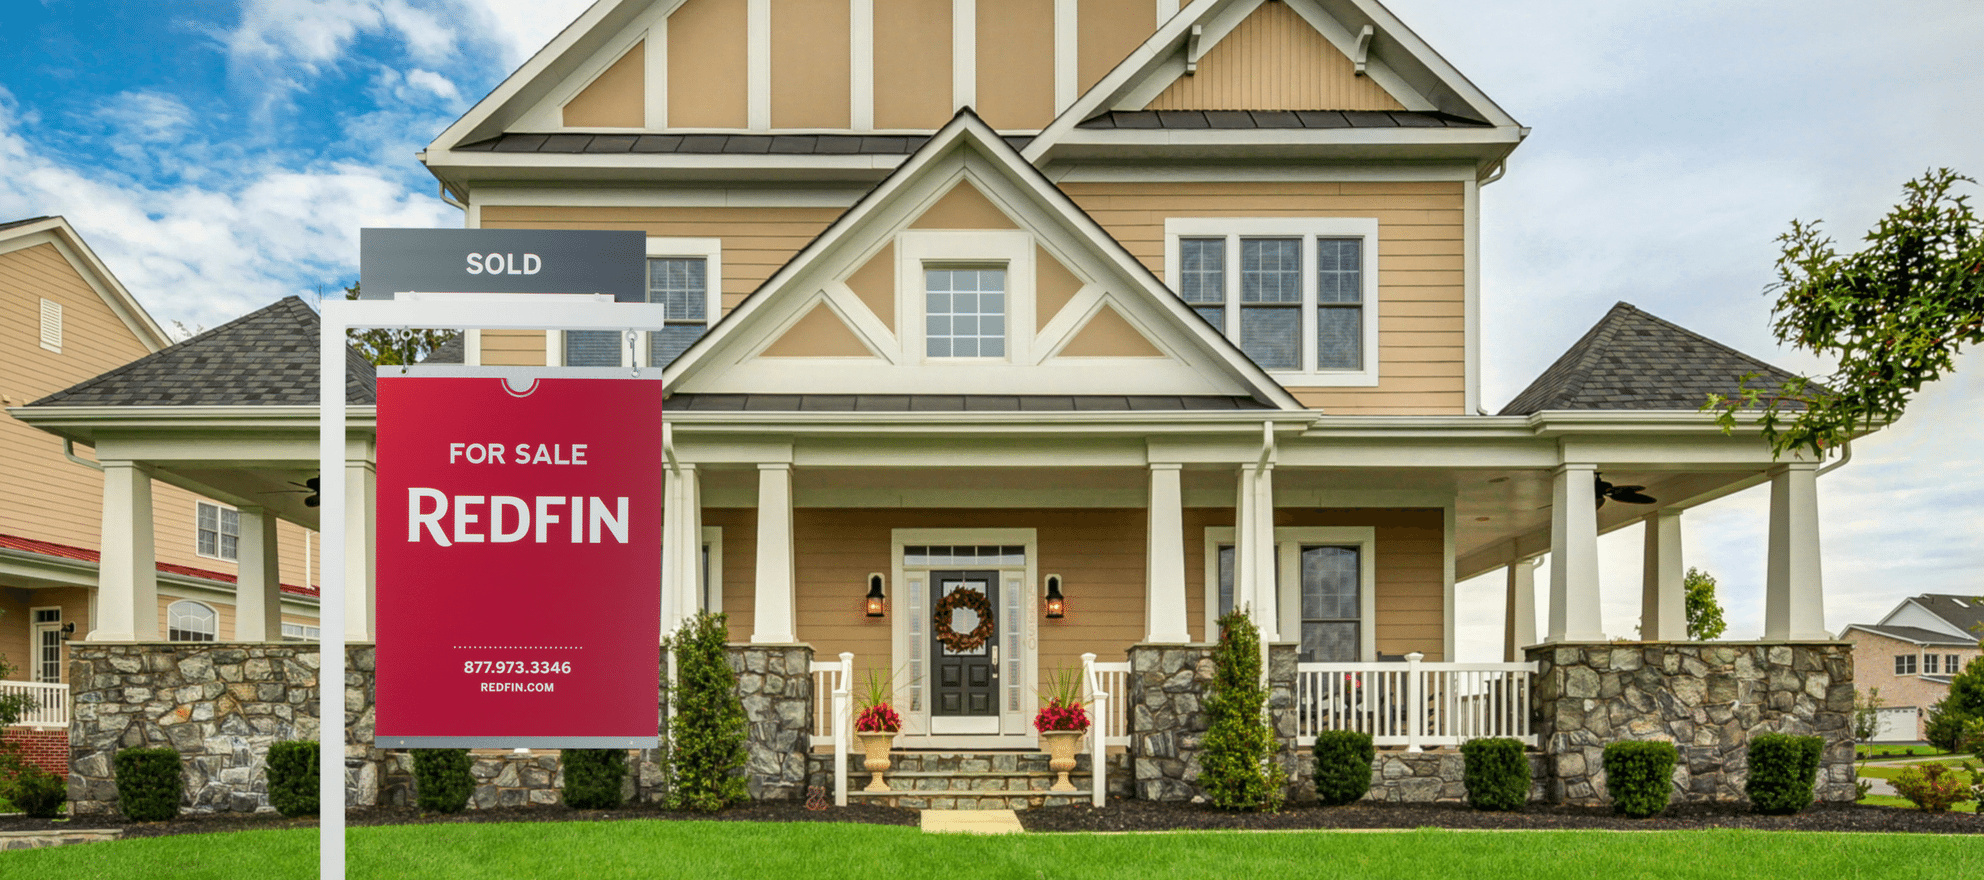 Should Amazon buy Redfin?